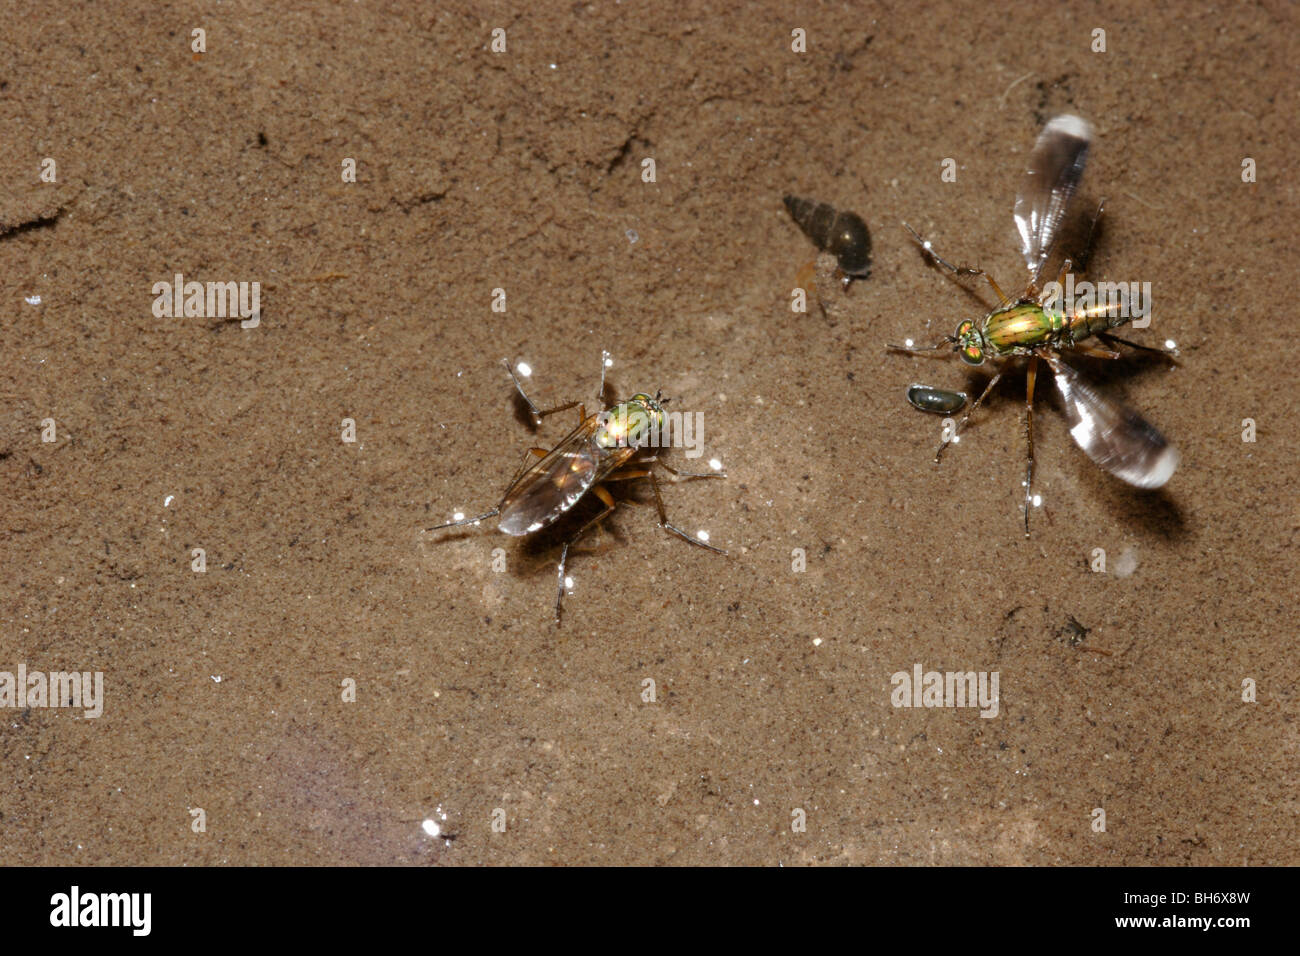 Long-headed fly (Poecilobothrus nobilitatus) male flicking his wings rapidly in courtship signalling to a female - Stock Image